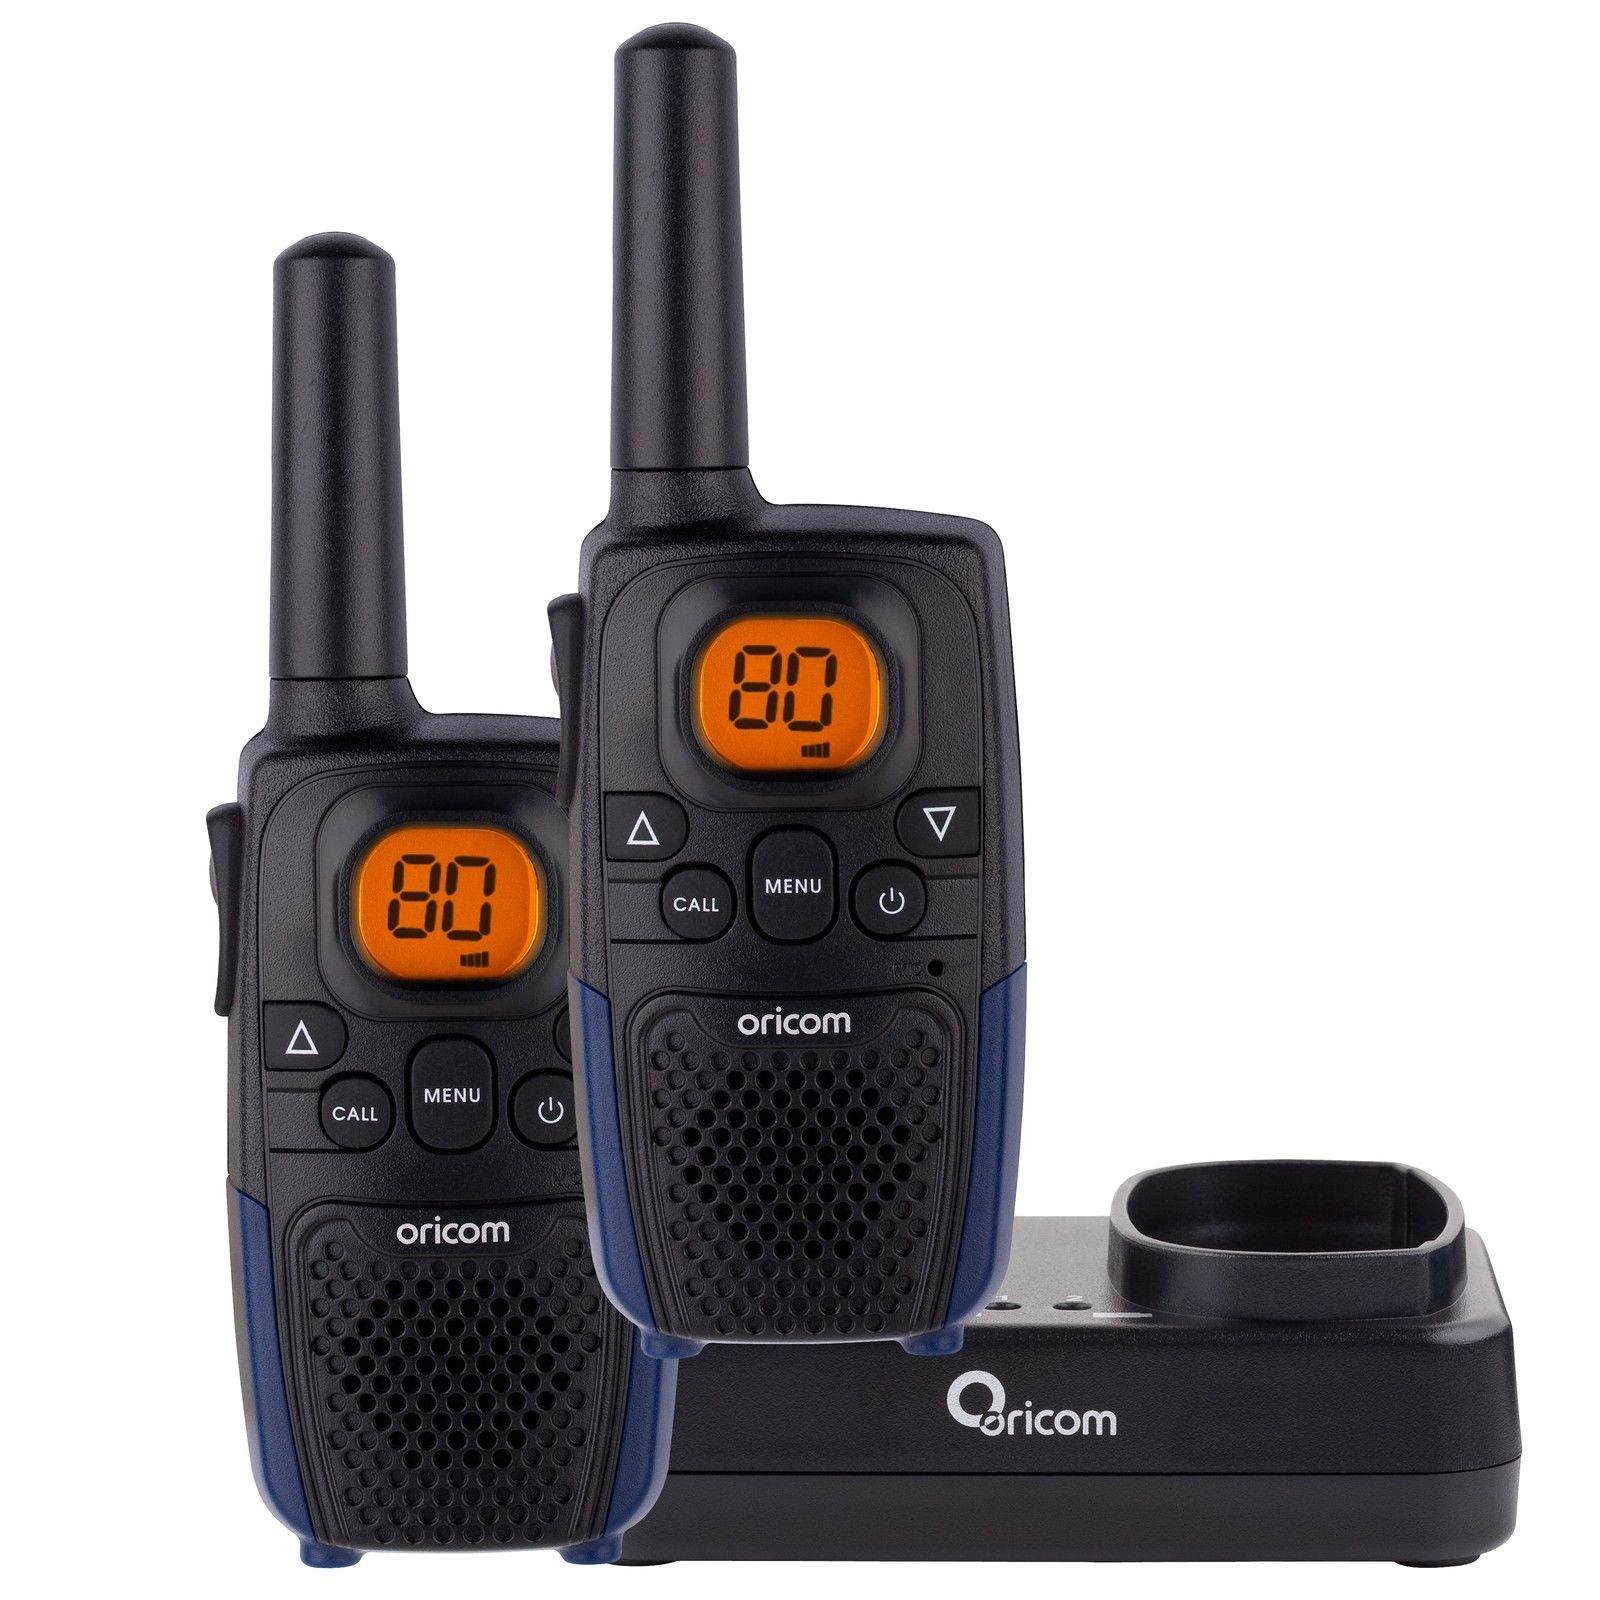 ORICOM PMR790 HANDHELD UHF RADIO TWIN PACK 80 CHANNELS